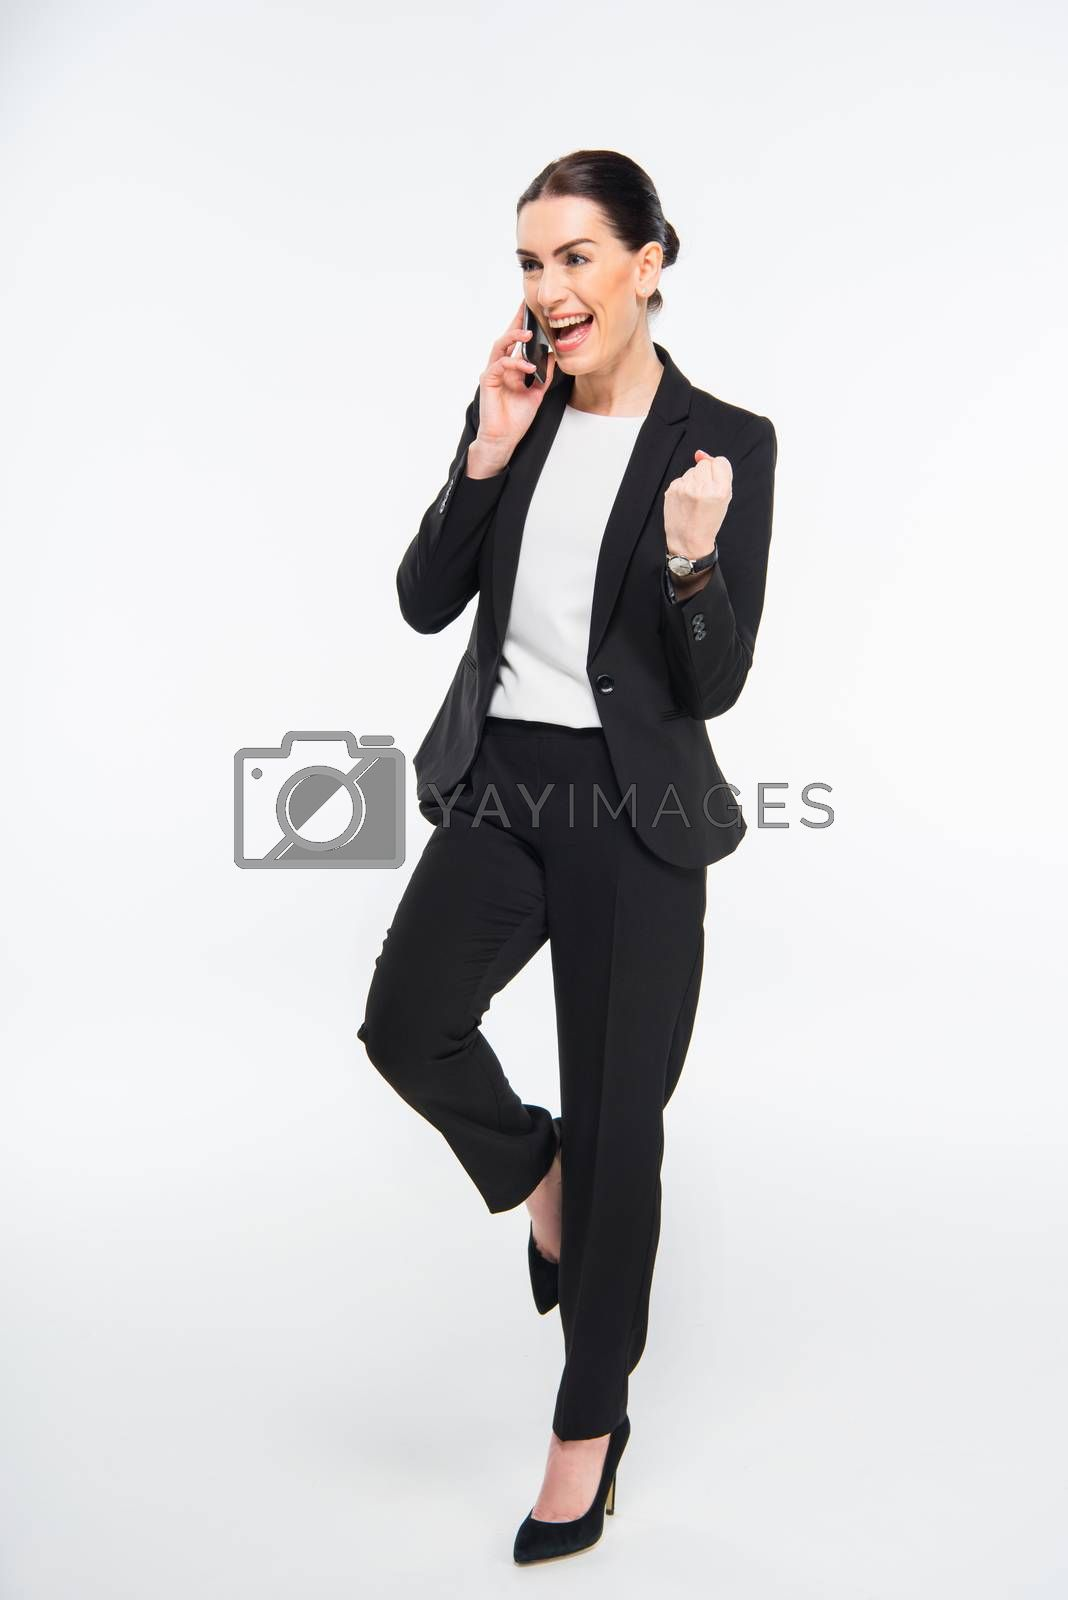 Excited professional businesswoman talking on smartphone on white